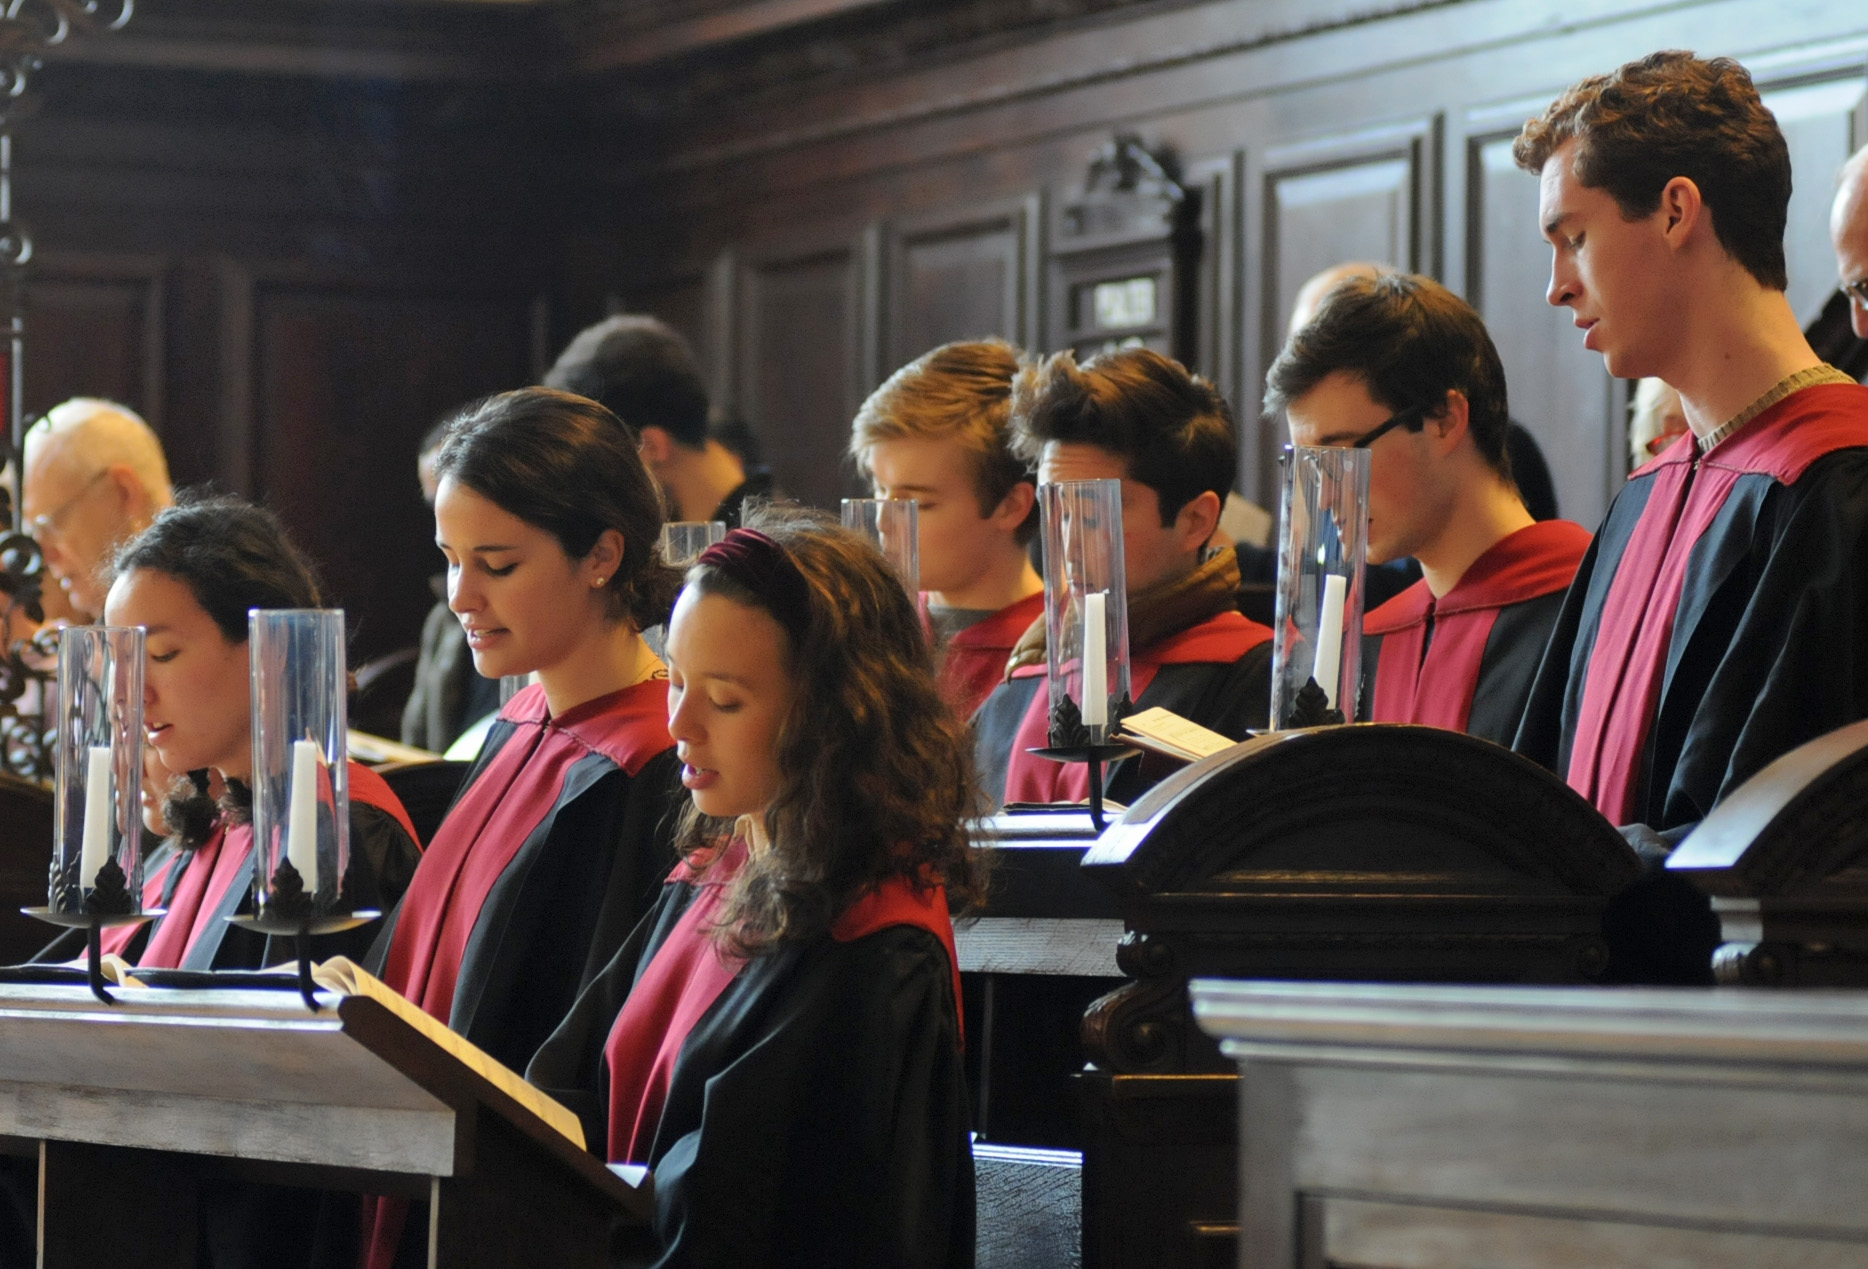 Harvard students sing hymns Monday morning before starting the special morning prayers held this week in preparation for the 3rd Annual LGBTQ Conference at Harvard.